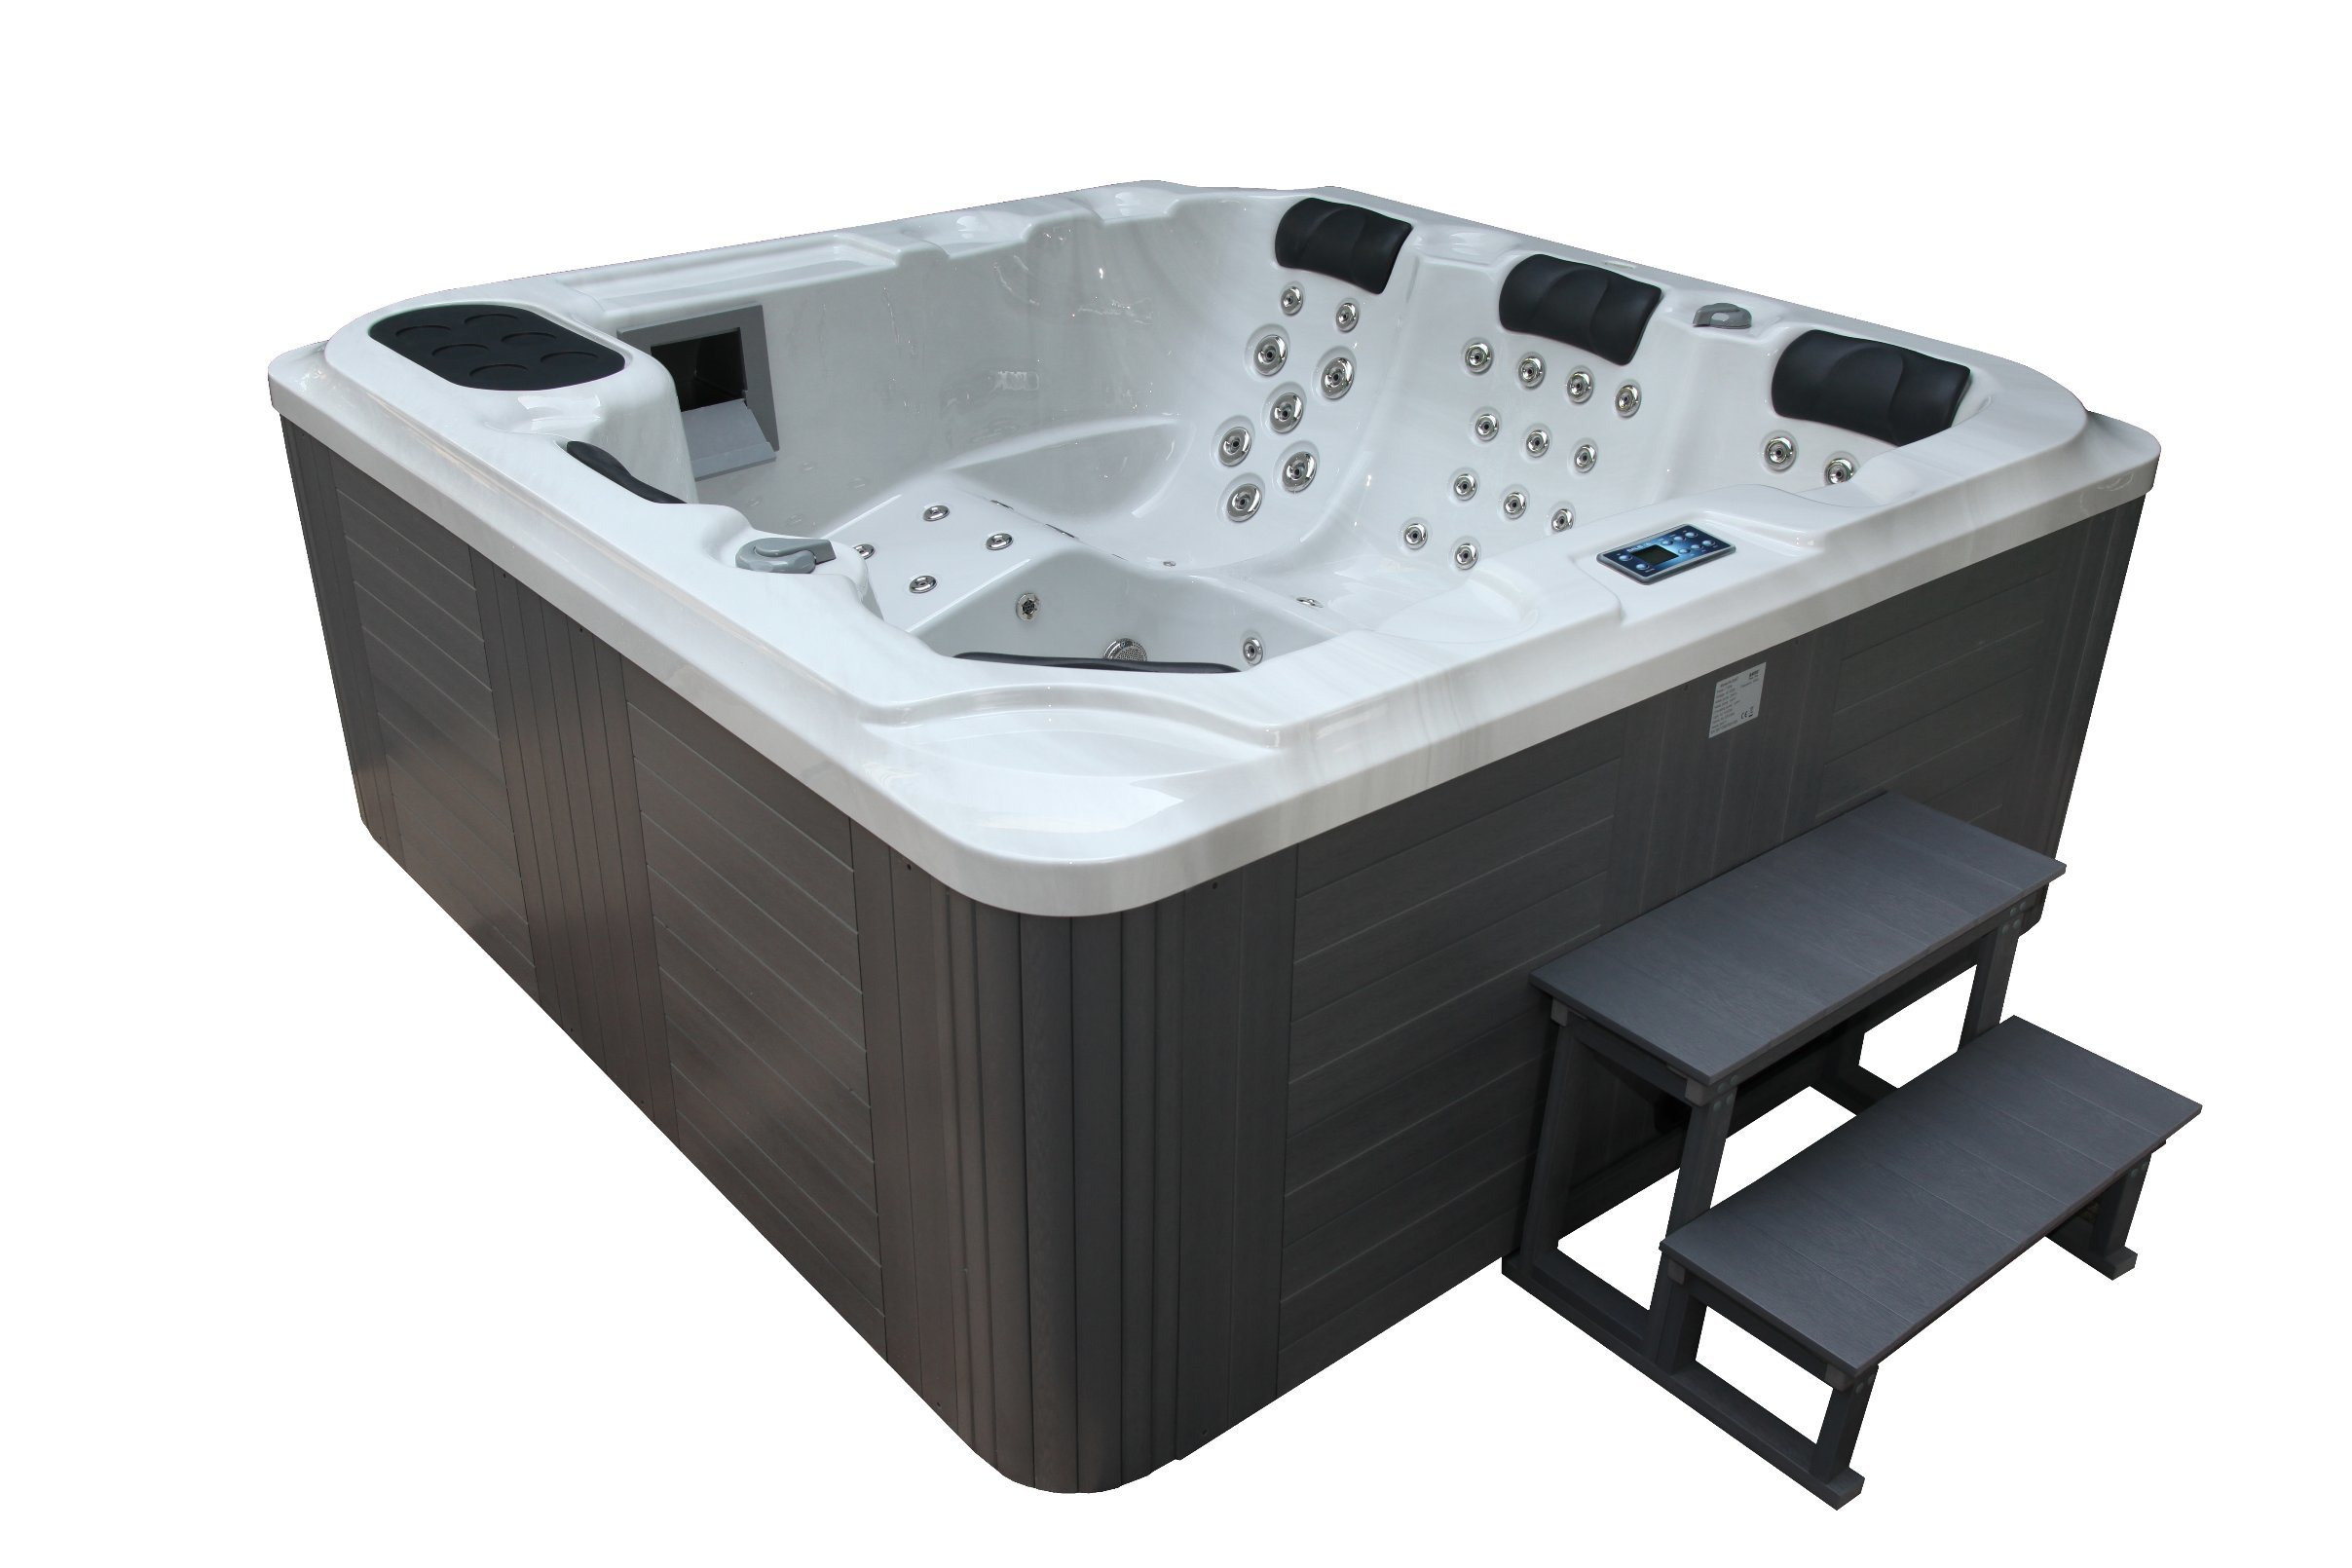 China Luxury Hot Tub / Jacuzzi Outdoor SPA for 5 People Photos ...